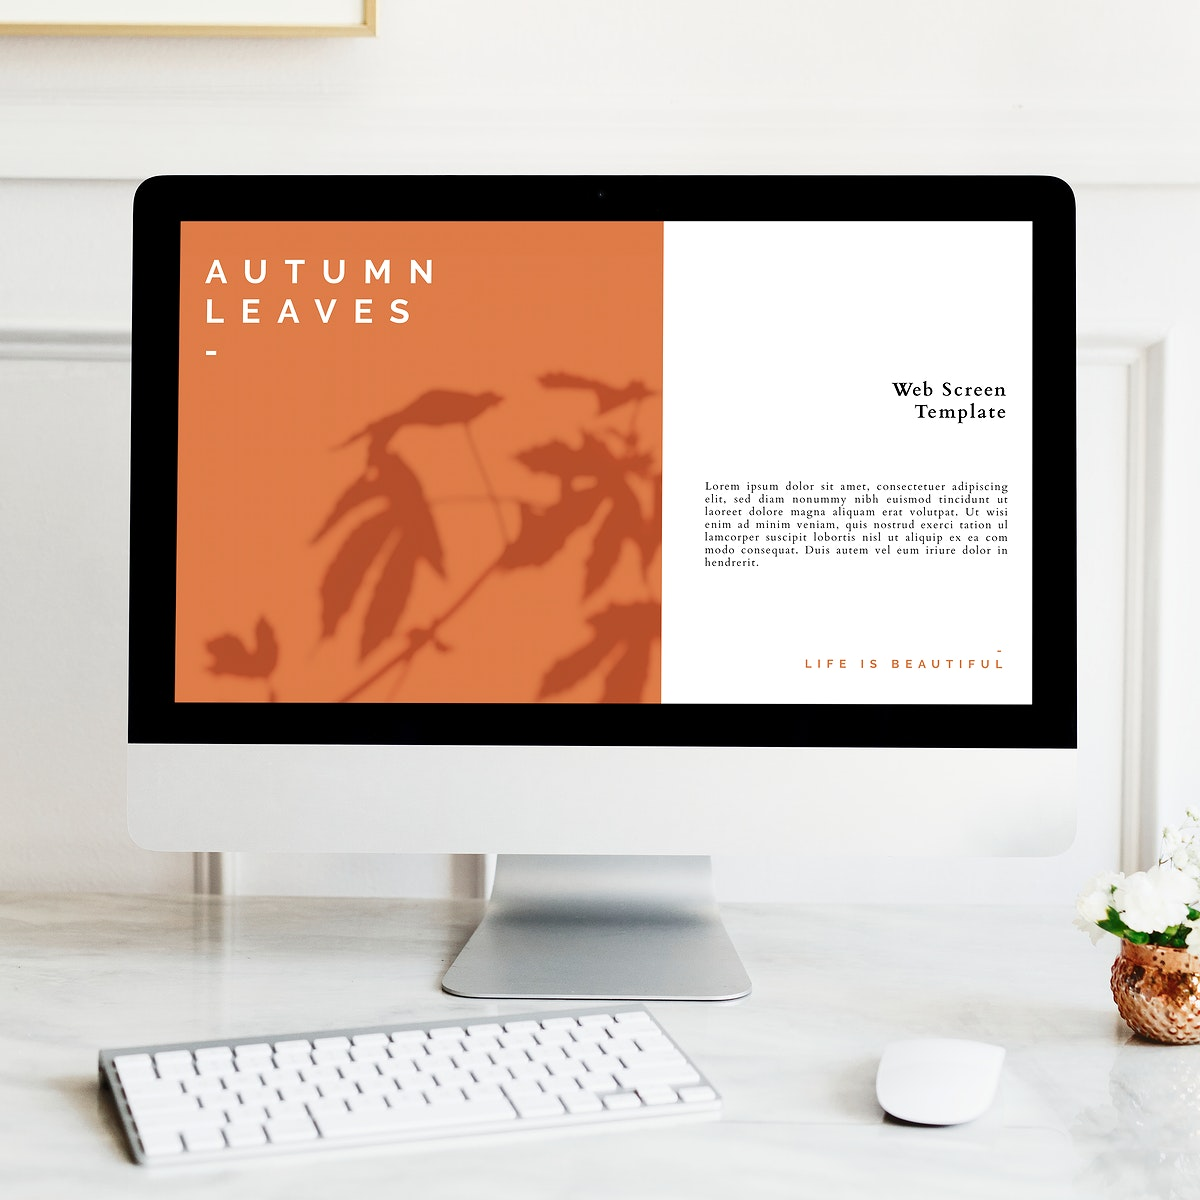 Computer screen mockup in a minimal design office